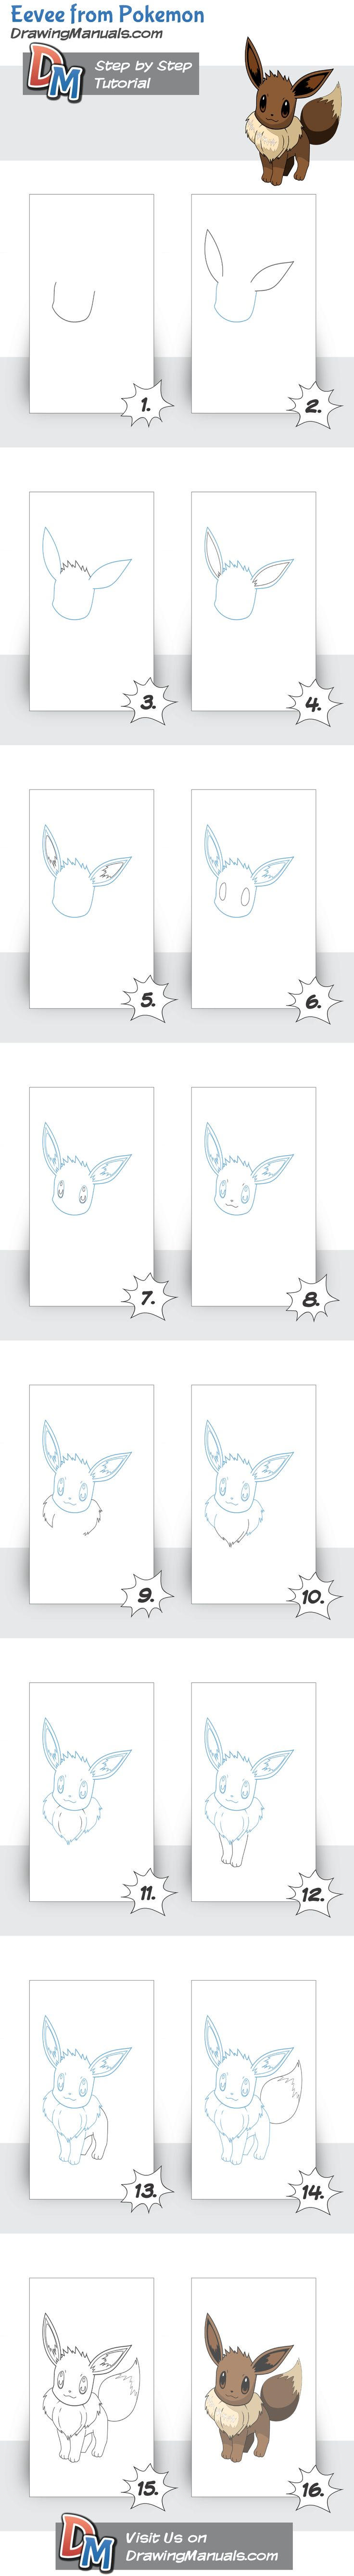 How to draw eevee from pokemon u pinterest